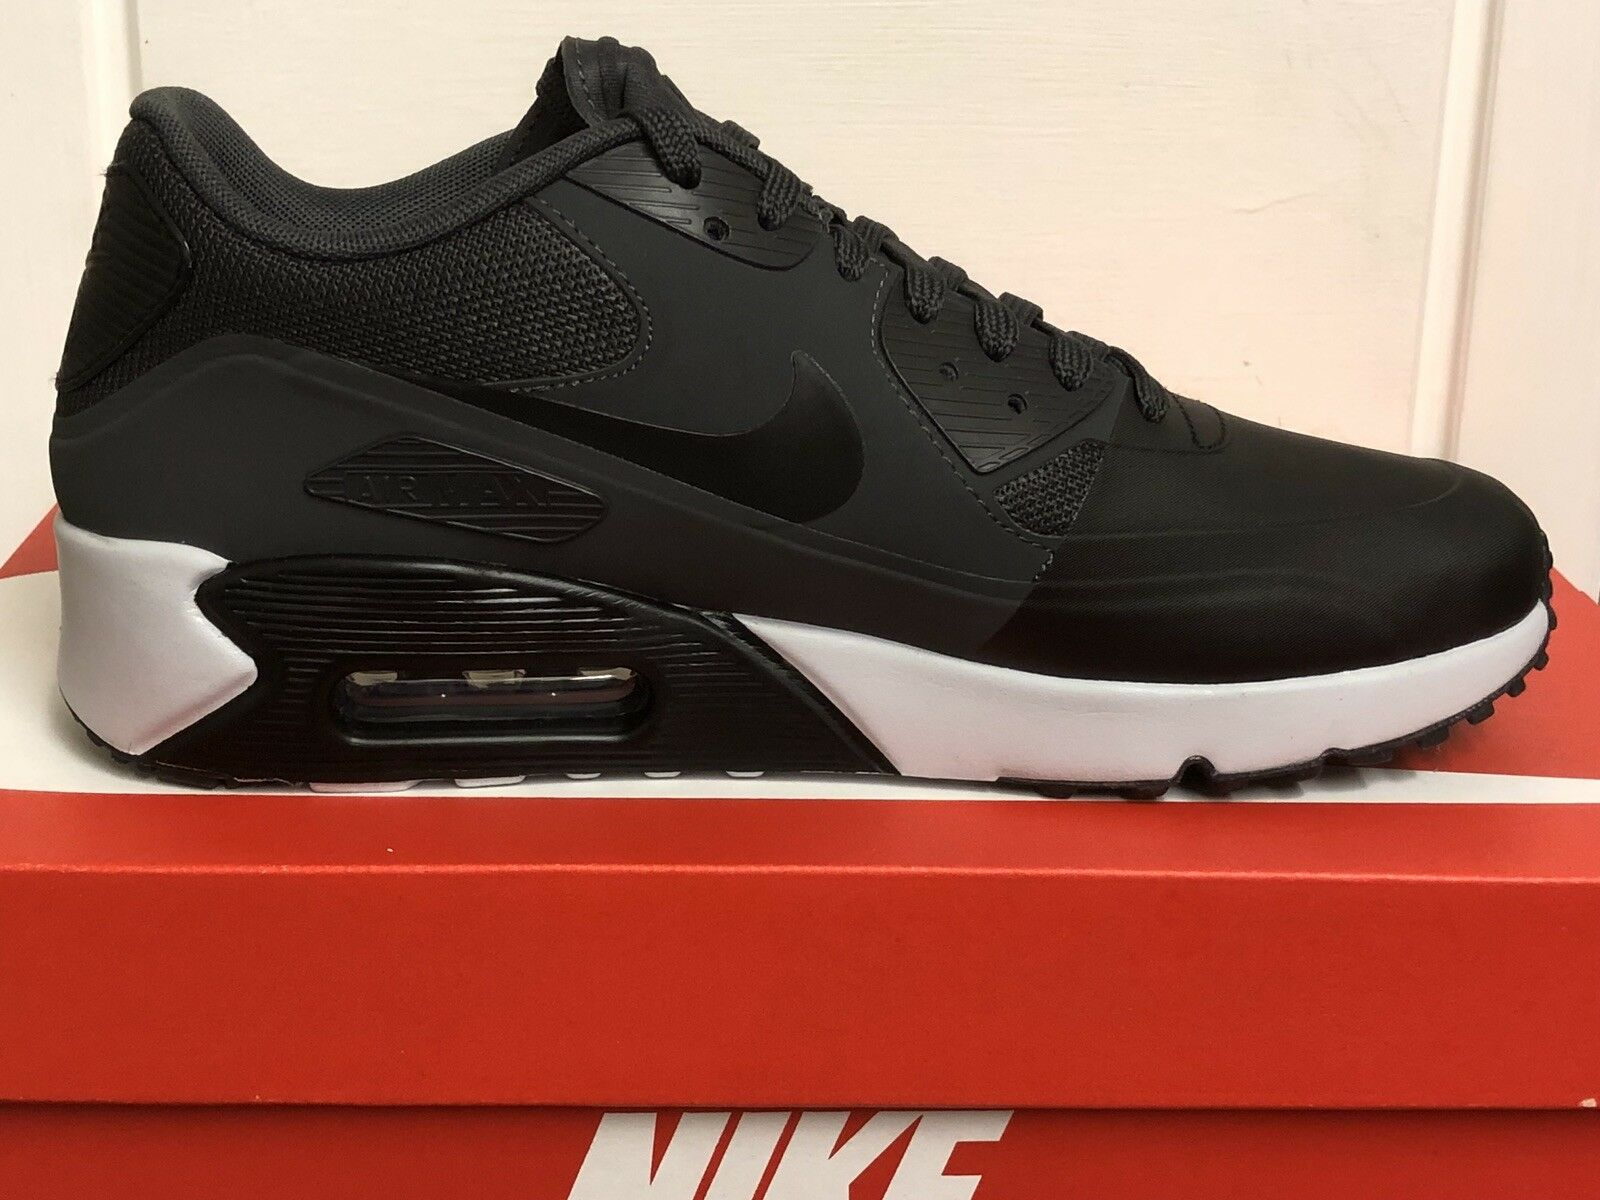 NIKE AIR MAX 90 ULTRA 2.0 Chaussures SE Hommes TRAINERS Baskets Chaussures 2.0 6 EUR 40 38f6e0